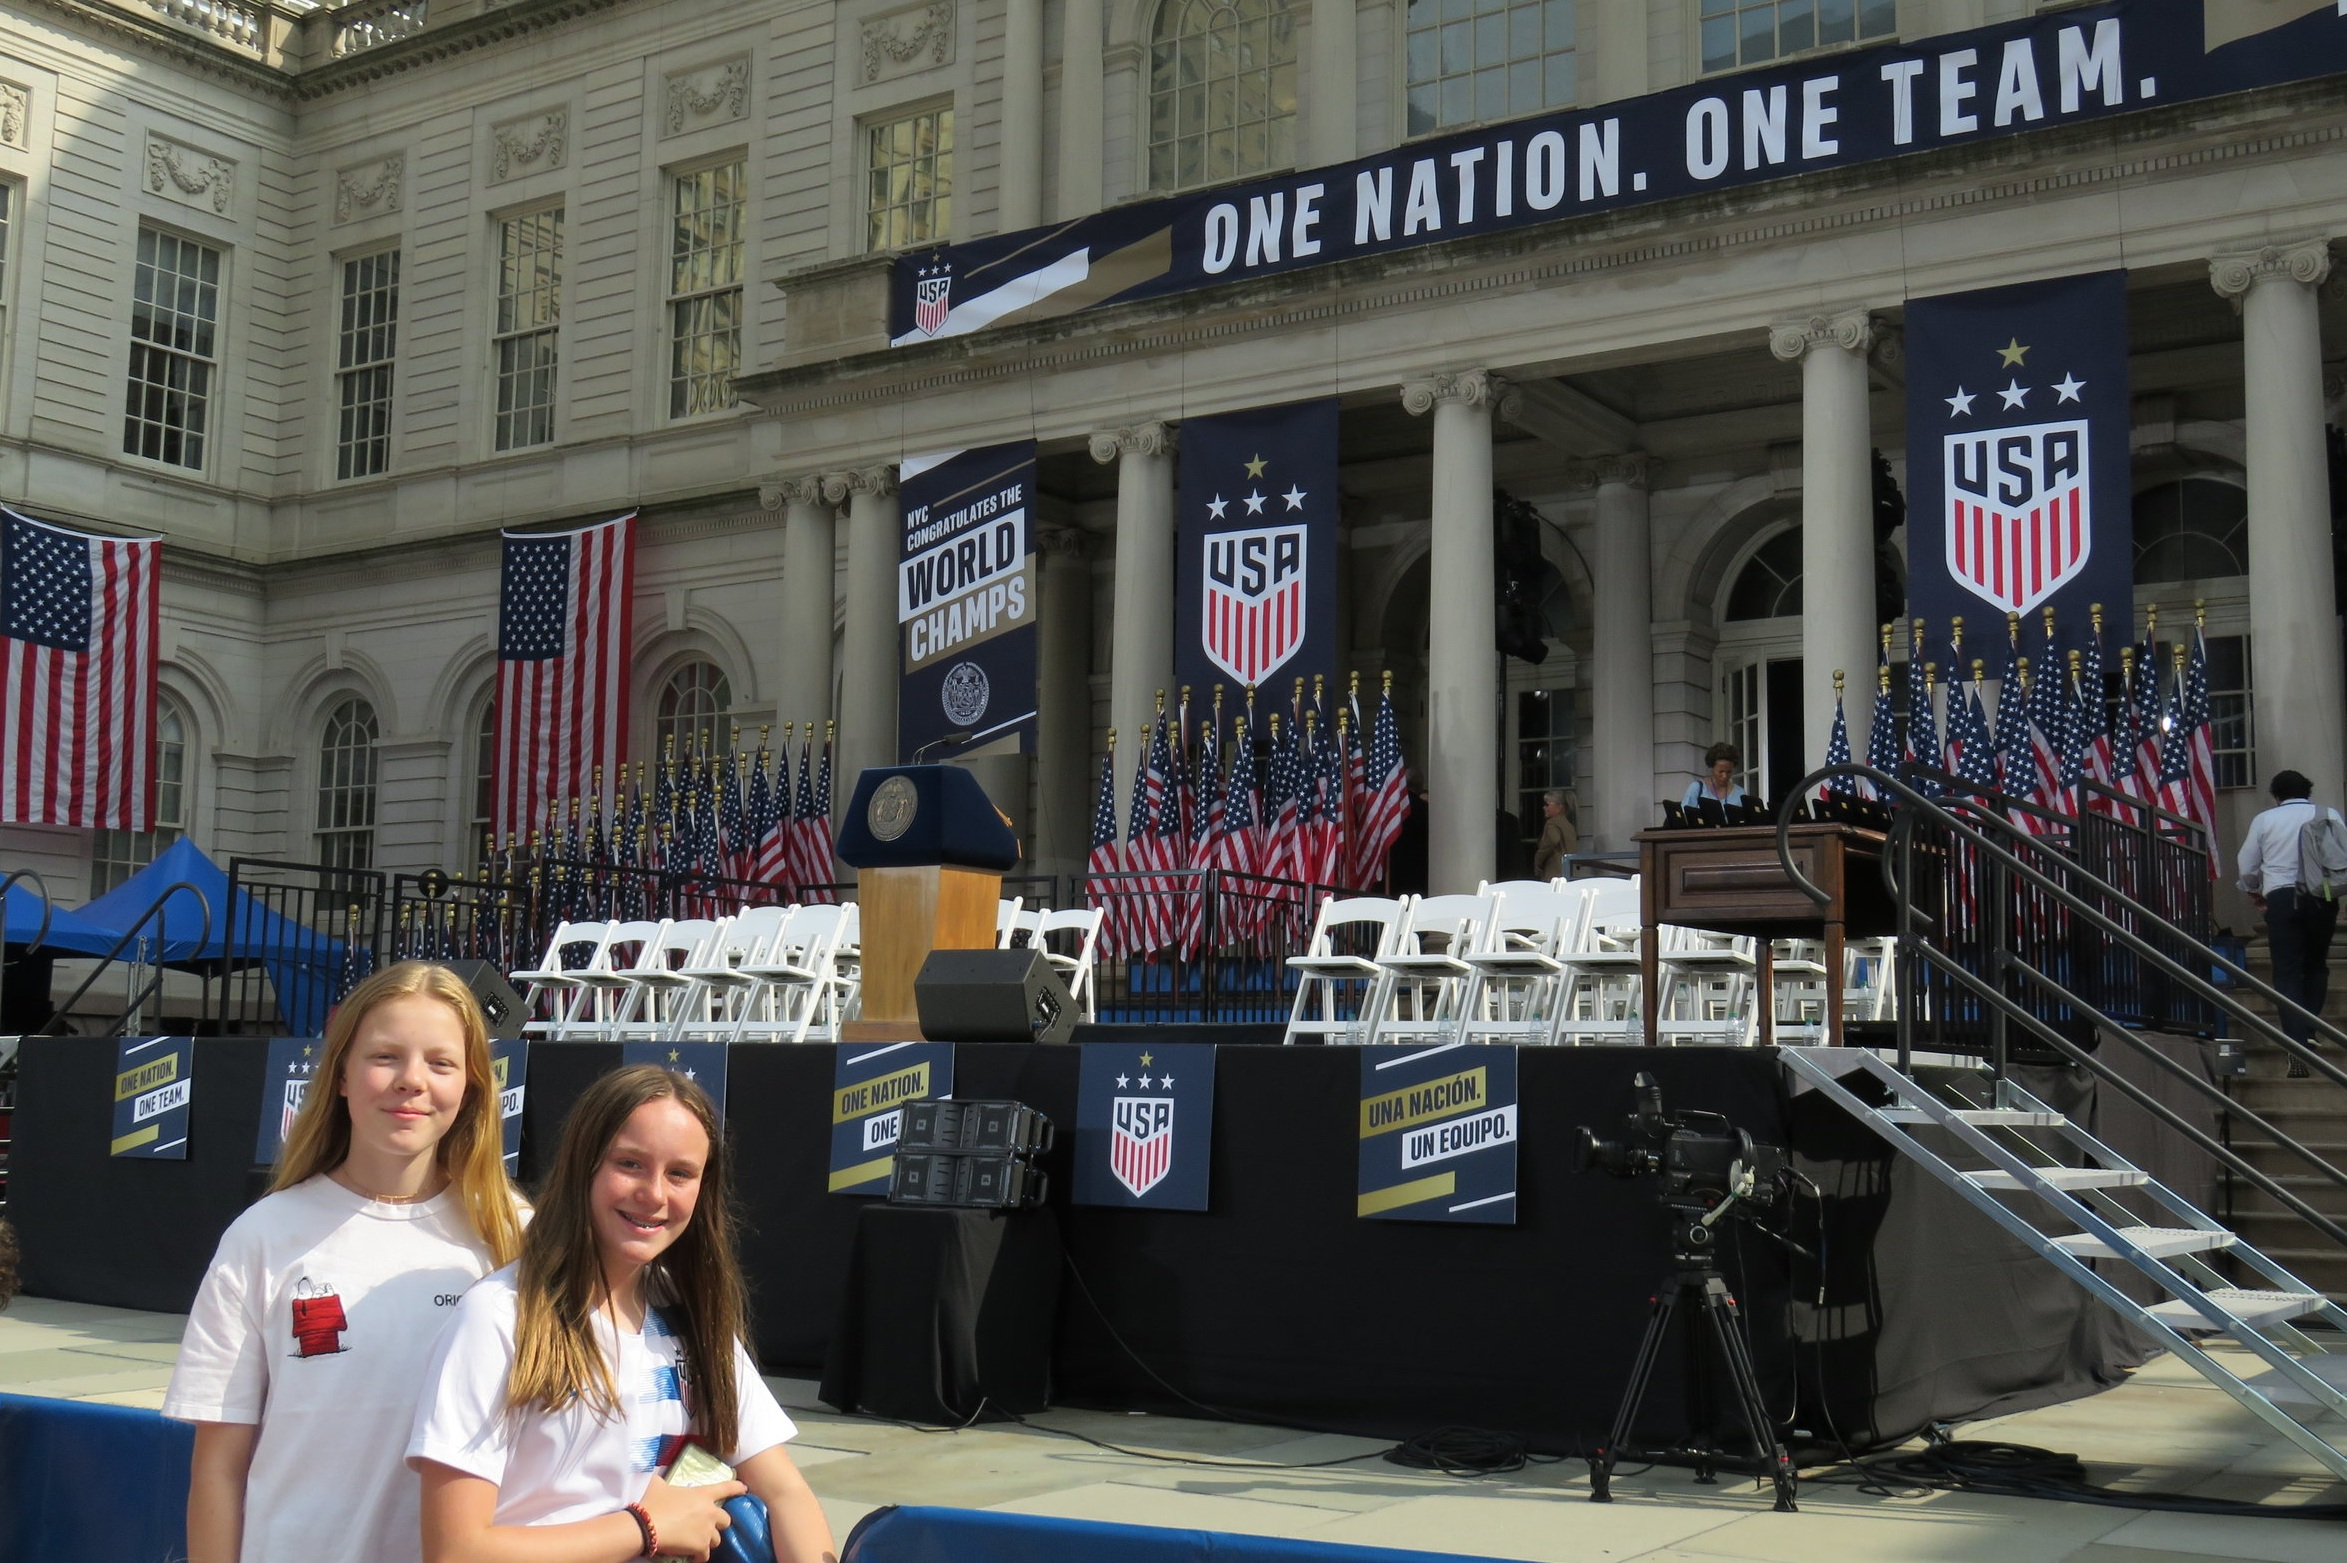 Shannon Gallagher and Katie Porazio, both 12, await the US Womens National Team.